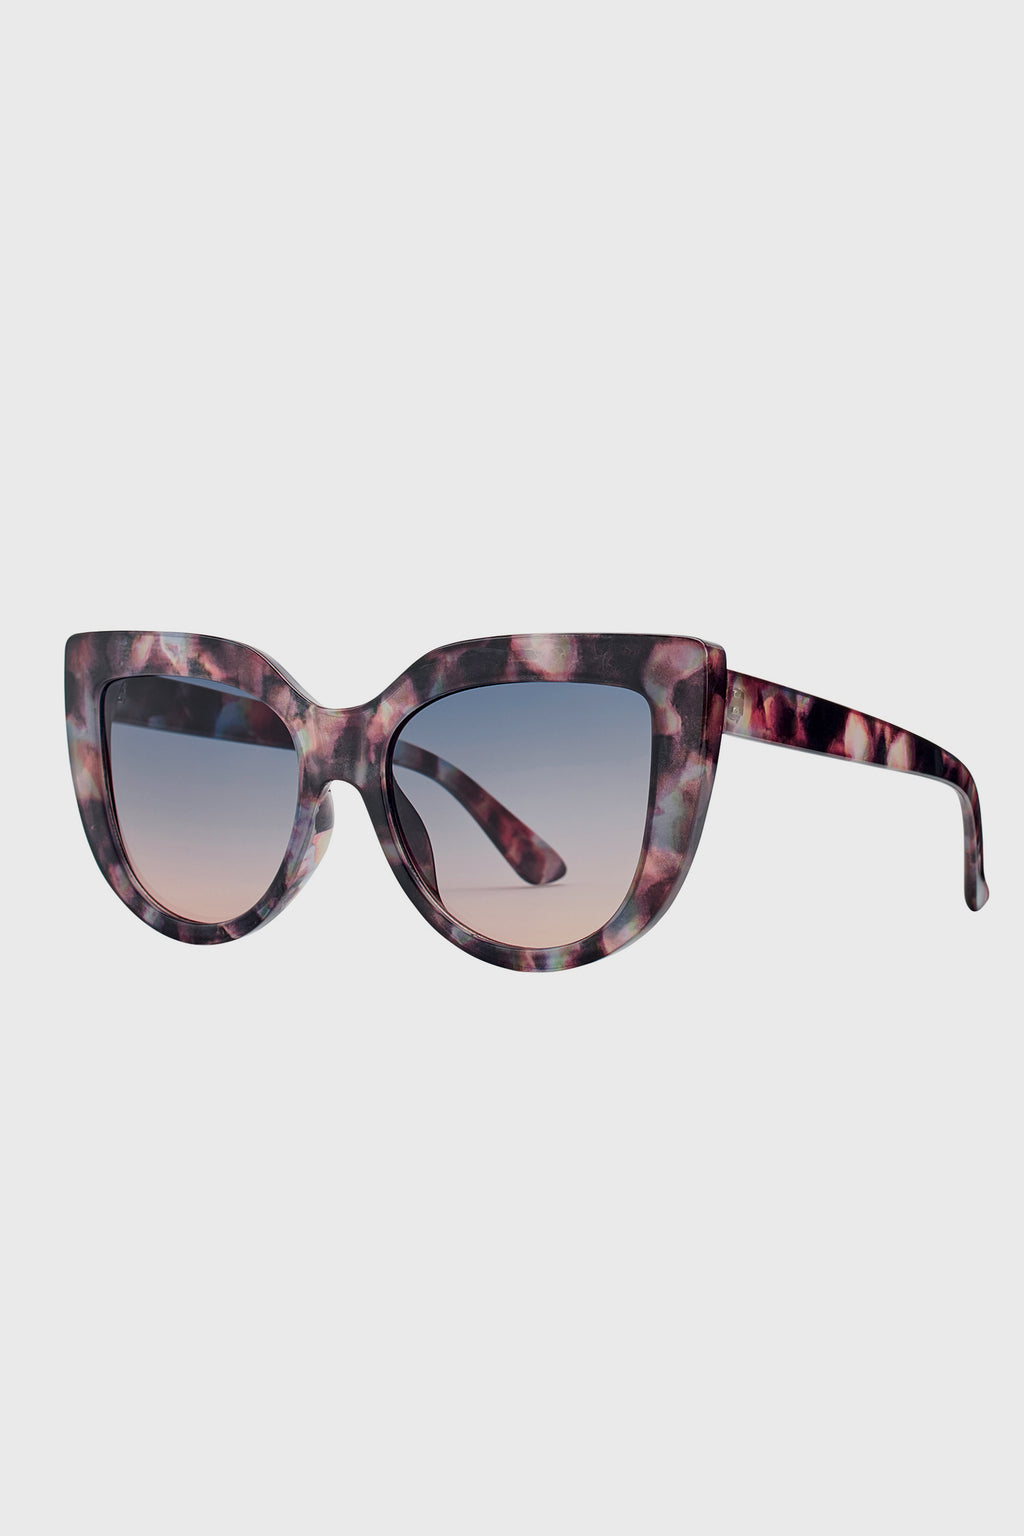 Oversized Cat Eye Tortoise Sunglass (BSG1083)-SUNGLASSES-BaySky